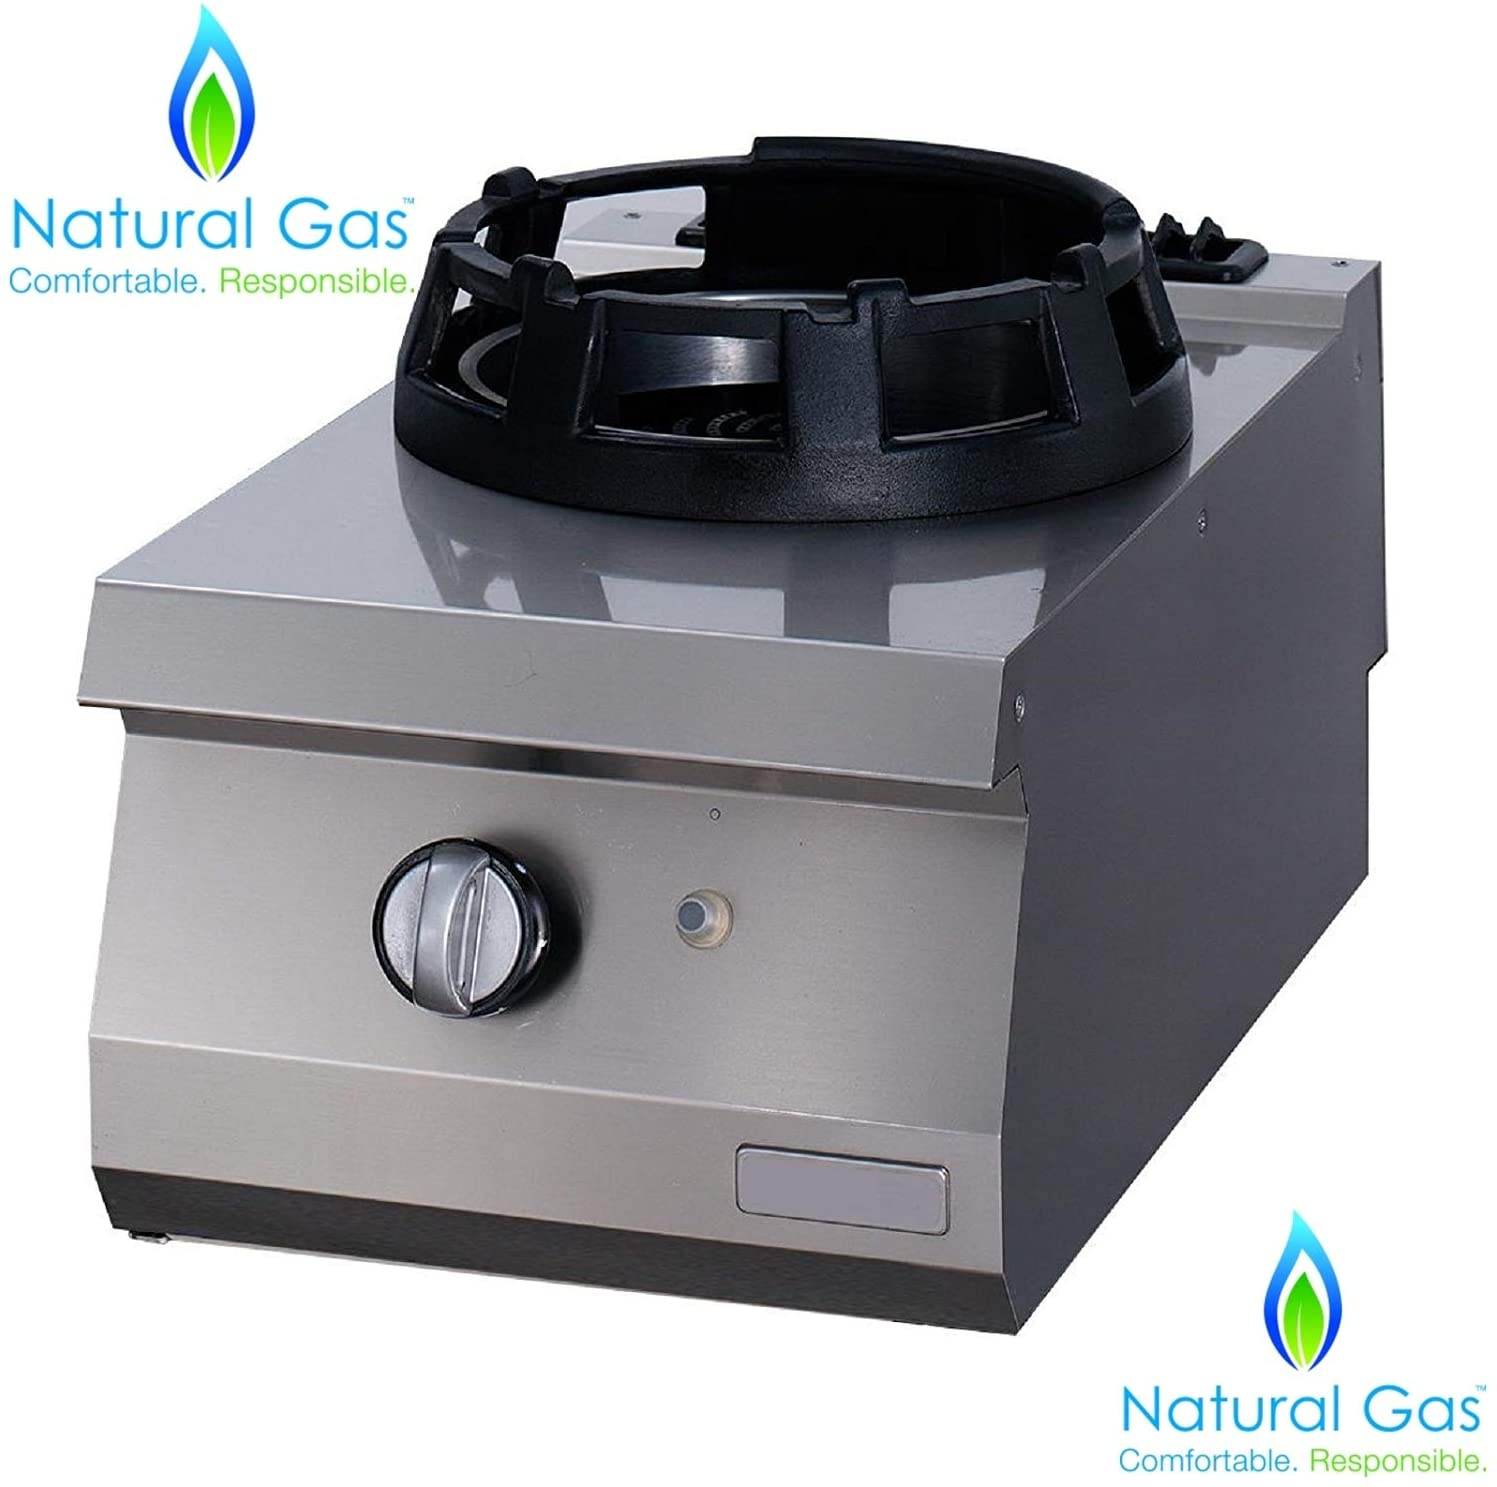 PROFESSIONAL Commercial Heavy Duty Countertop Single WOK Burner Station Range cooktop cast iron Stove works with NATURAL GAS